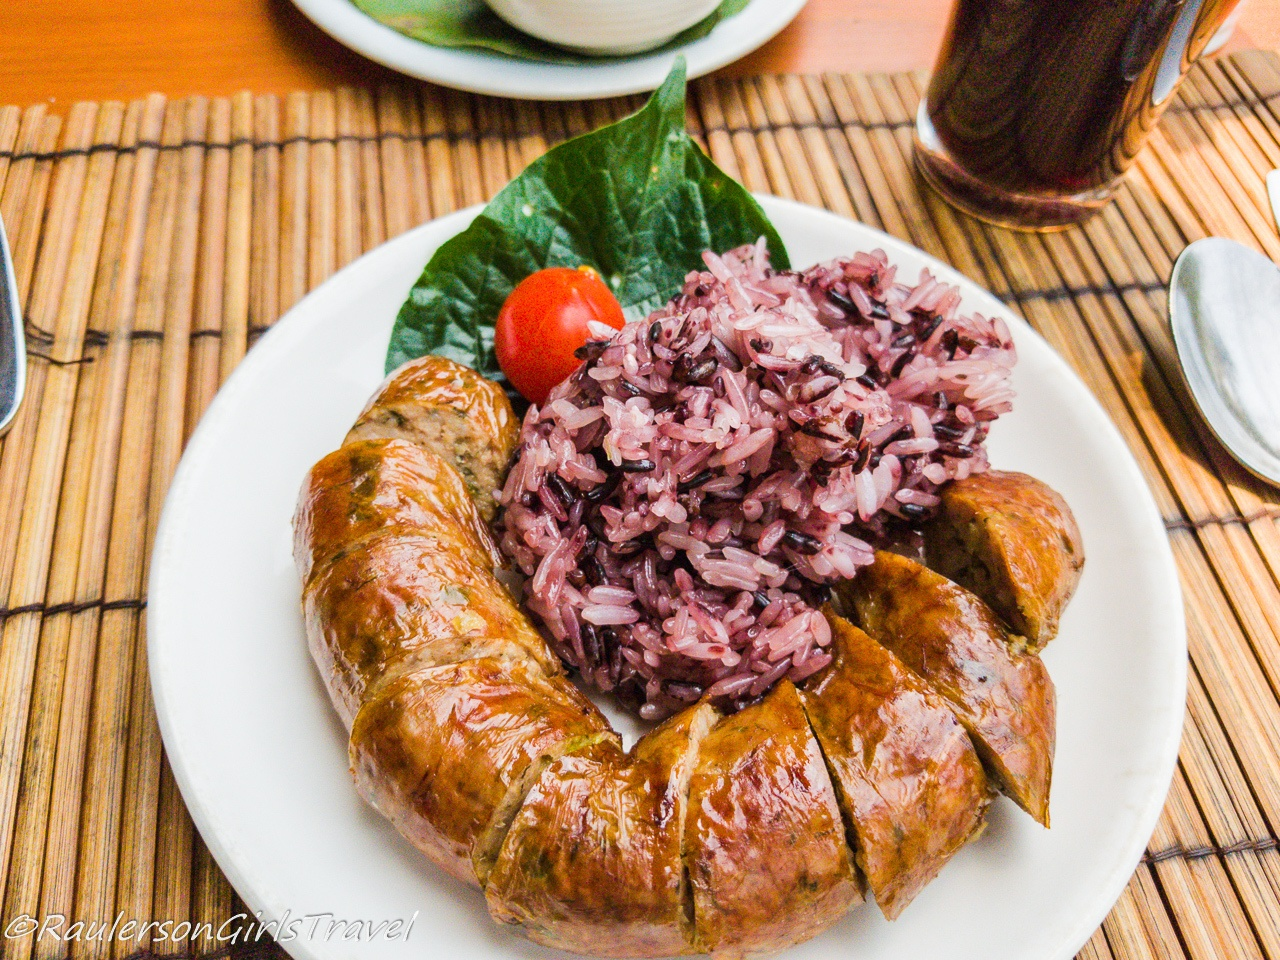 Pork Sausage and Steamed Sticky Rice in Laos